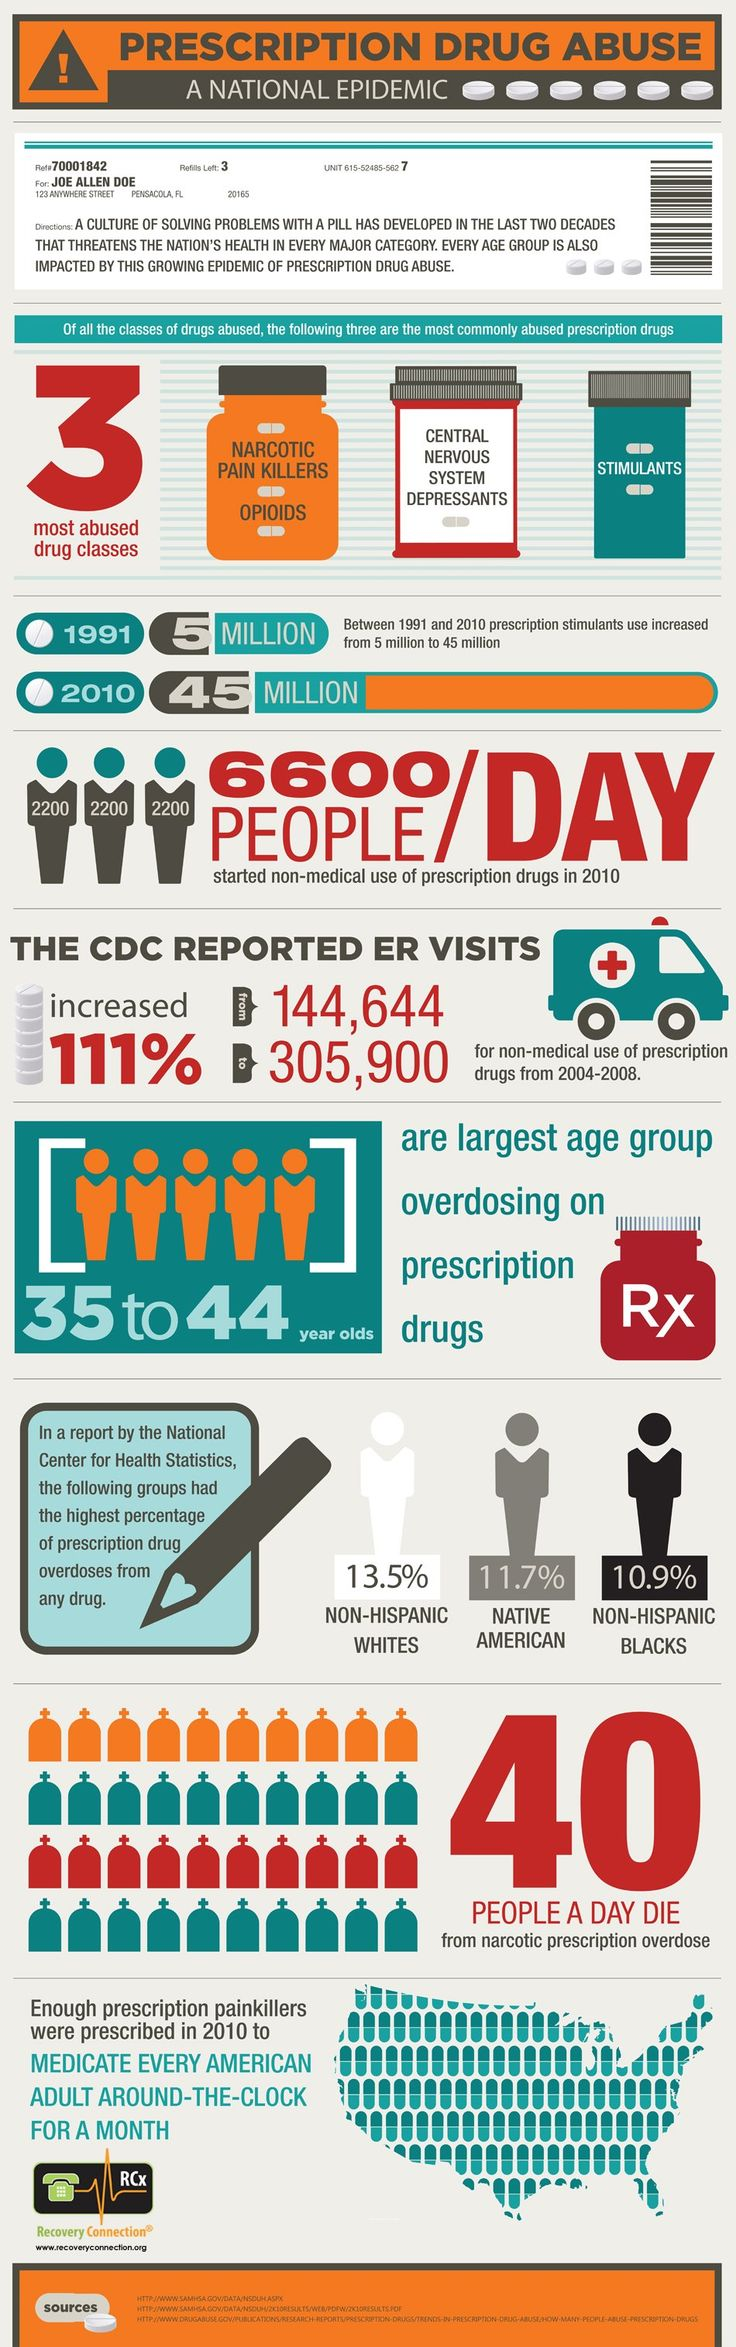 best images about prescription drug abuse tis prescription drug abuse infographic new visions healthcare blog healthcoverageally com